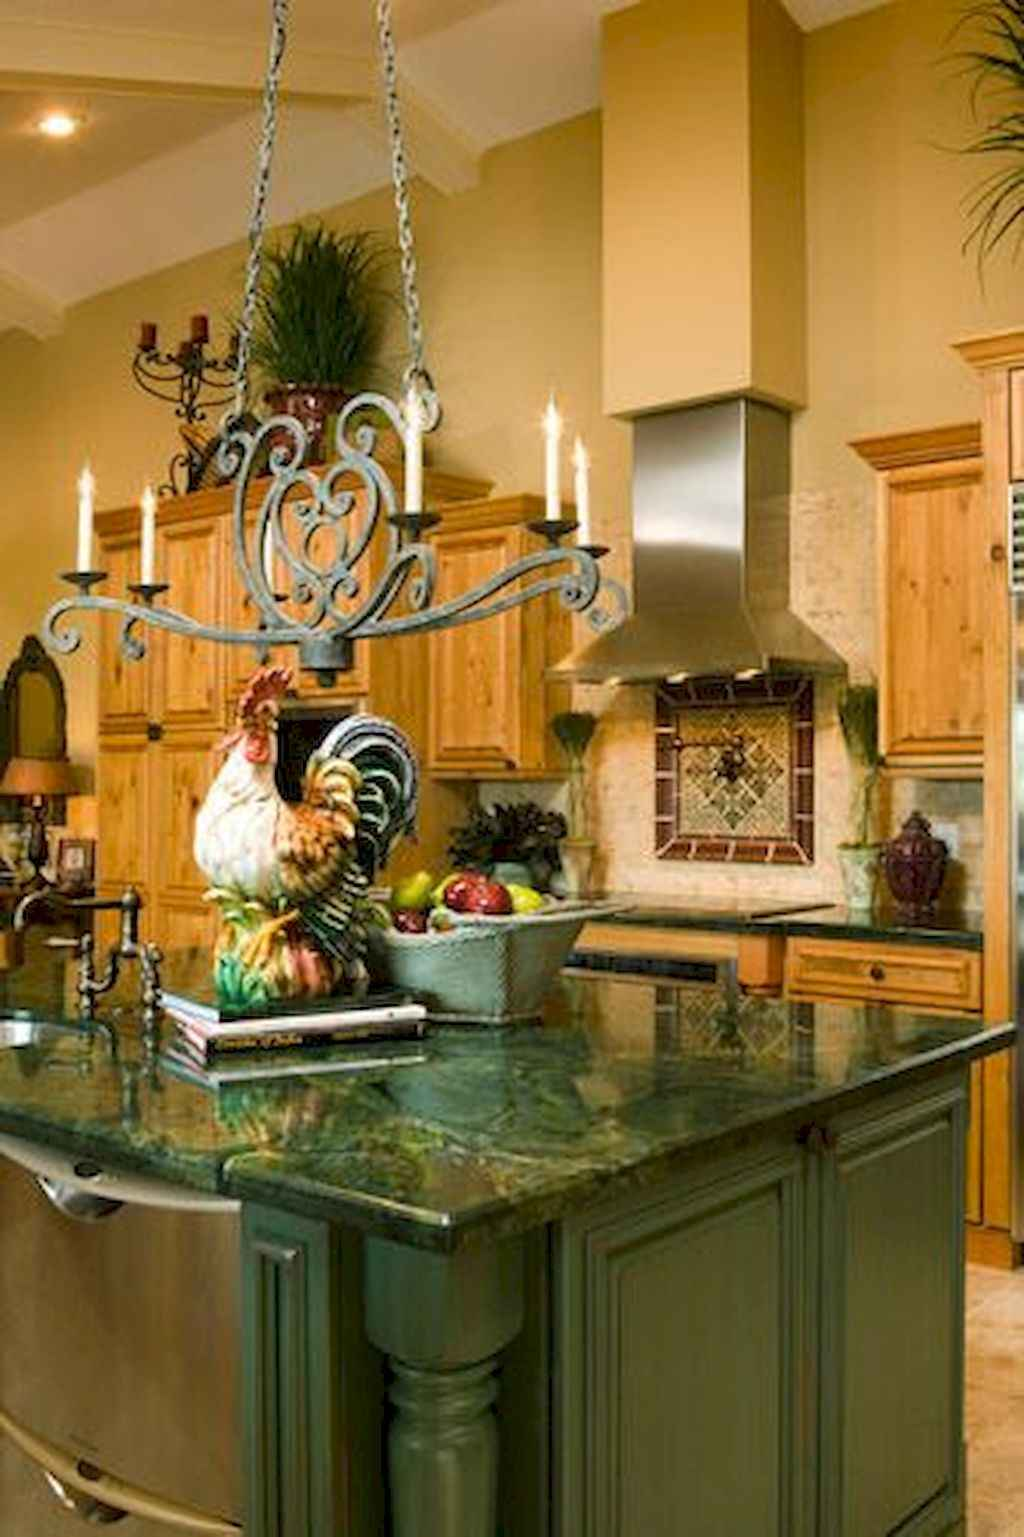 Incredible french country kitchen design ideas (33)